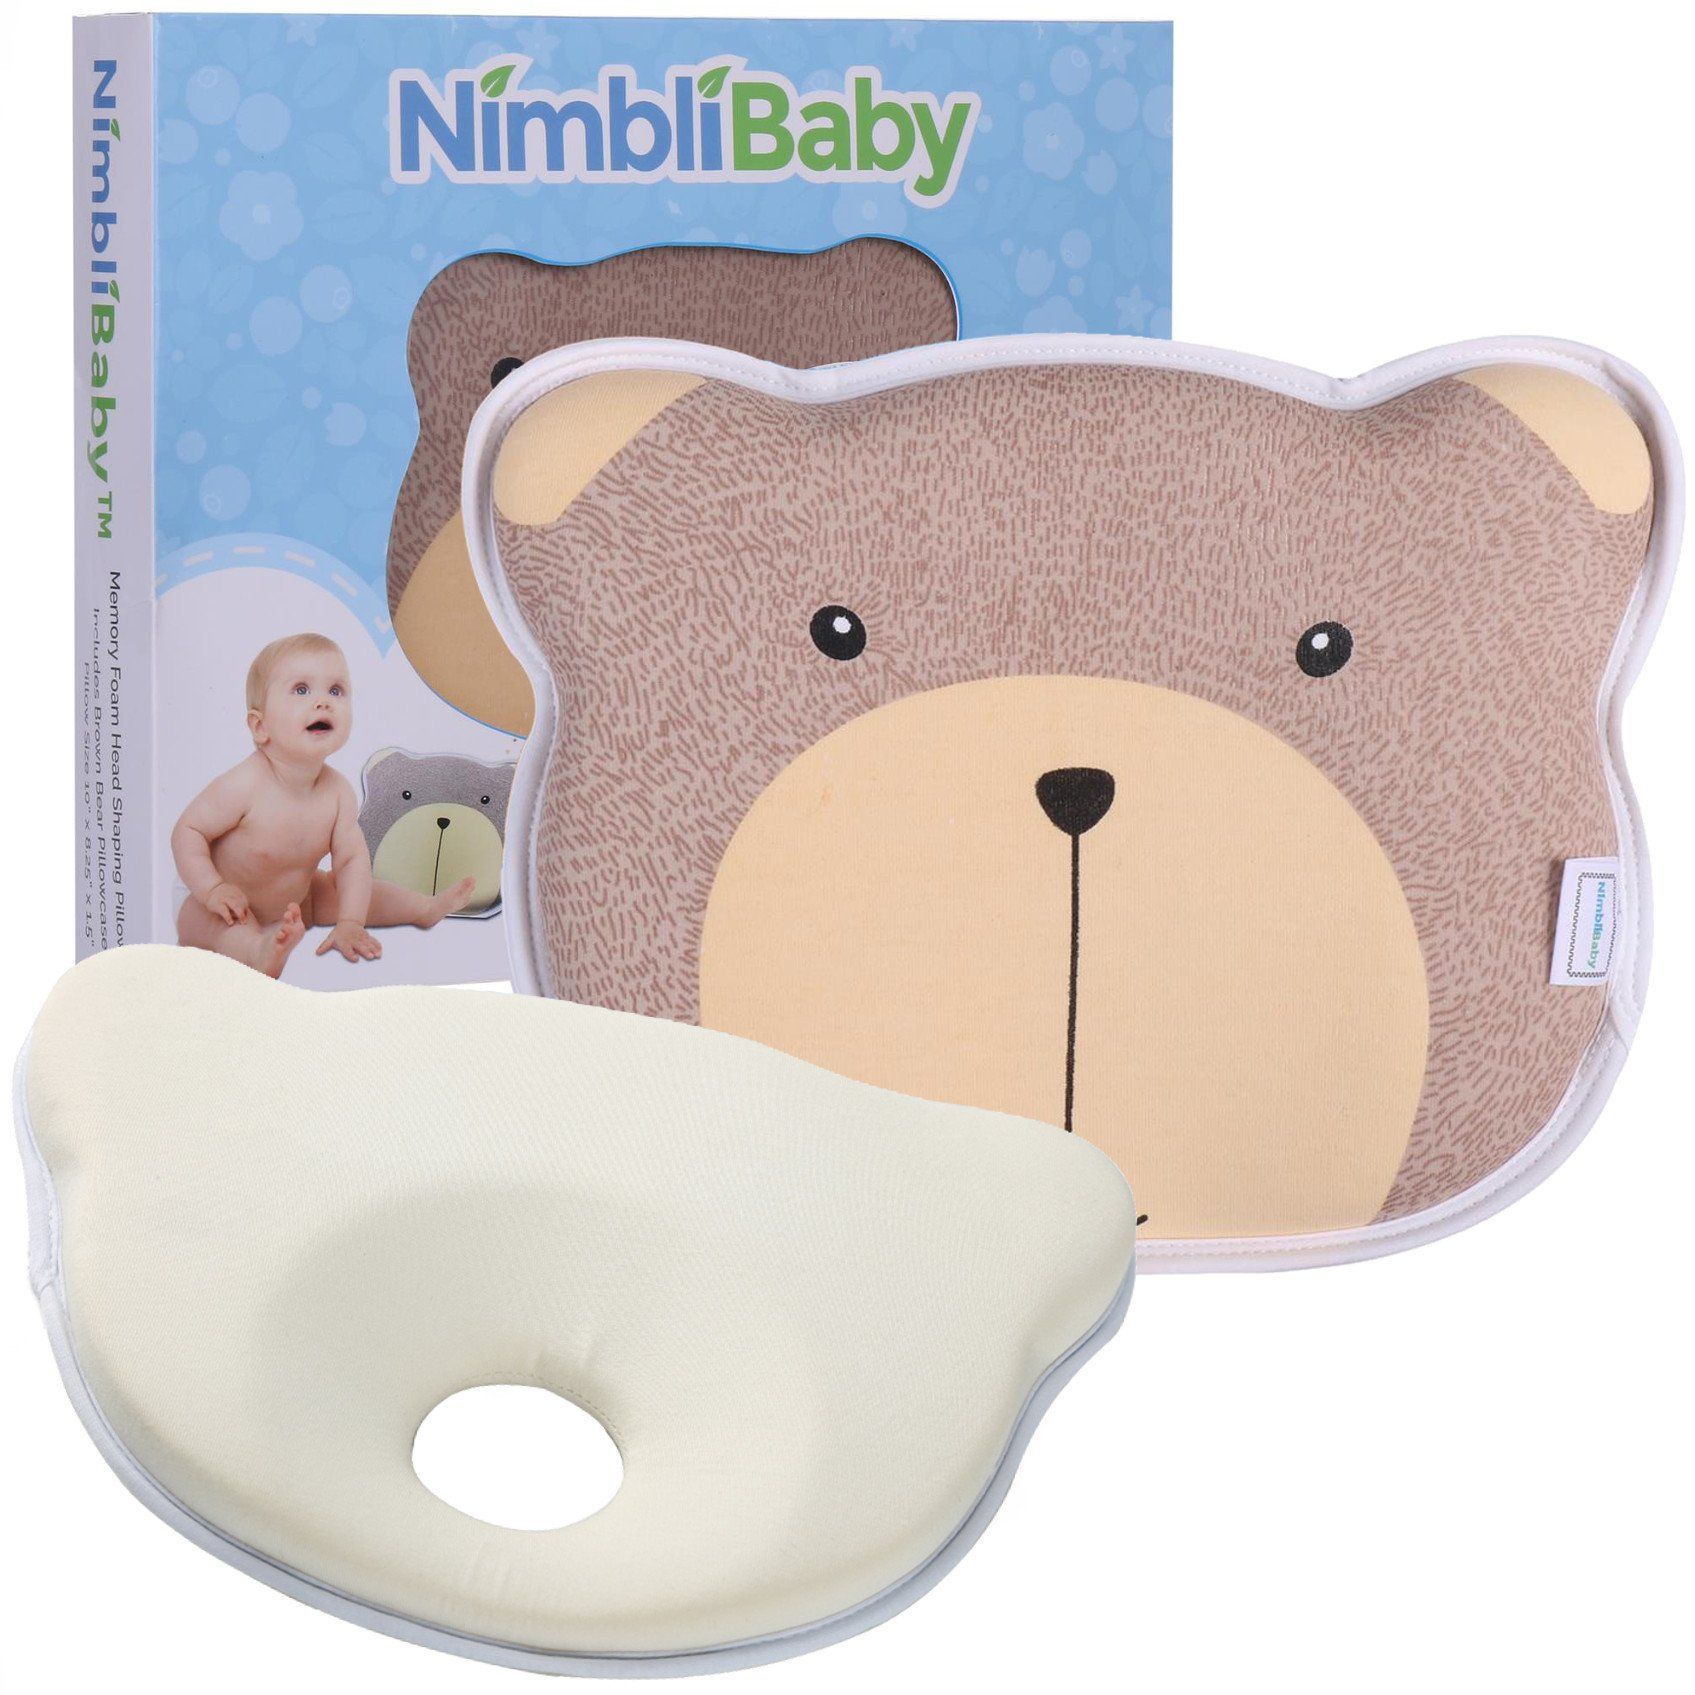 Baby Head Shaping Pillow - Memory Foam flat head baby pillow - baby registry must have gift